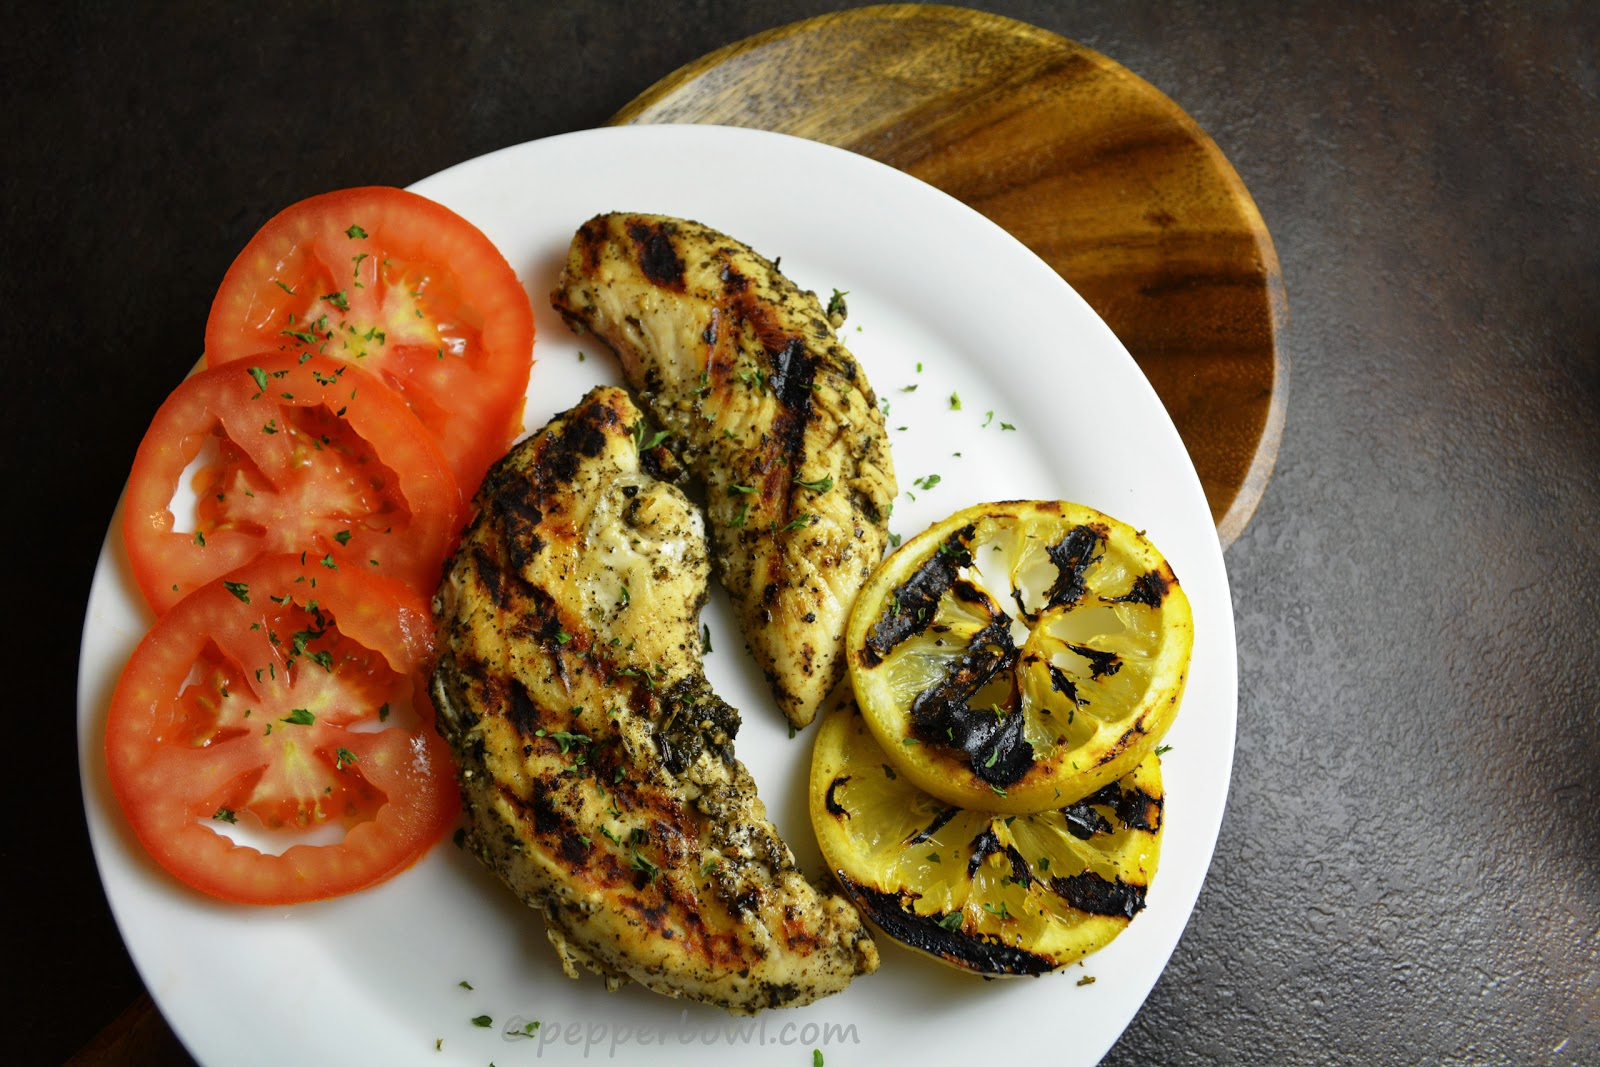 Lemon Grilled Chicken, a super simple recipe